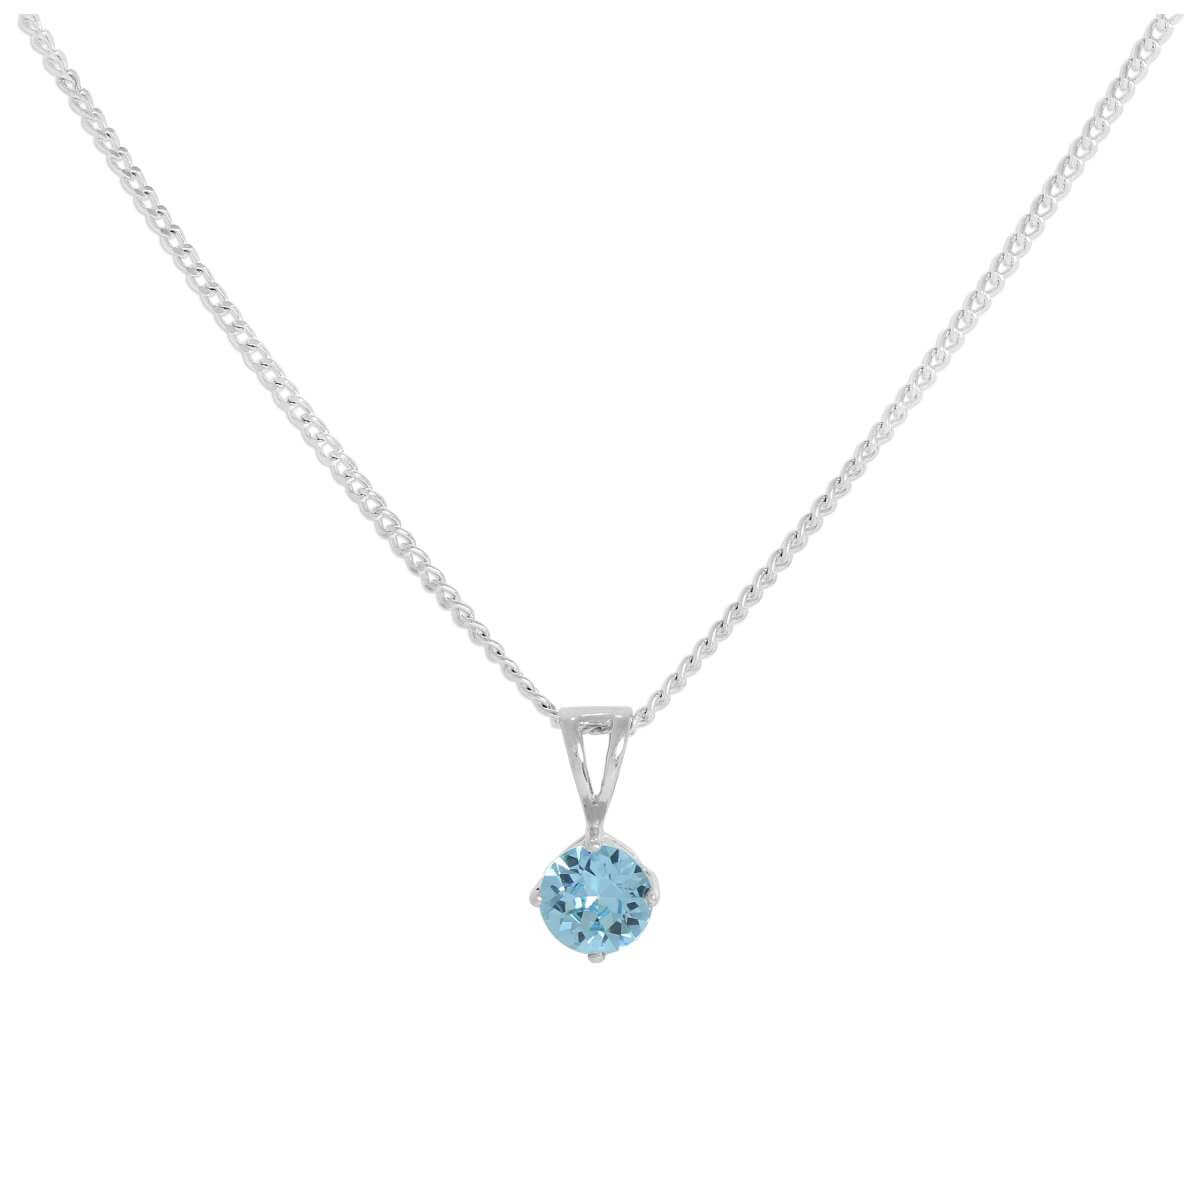 Sterling Silver & Aquamarine Crystal Made with Swarovski Elements March Birthstone Pendant on Chain 16 - 24 Inches